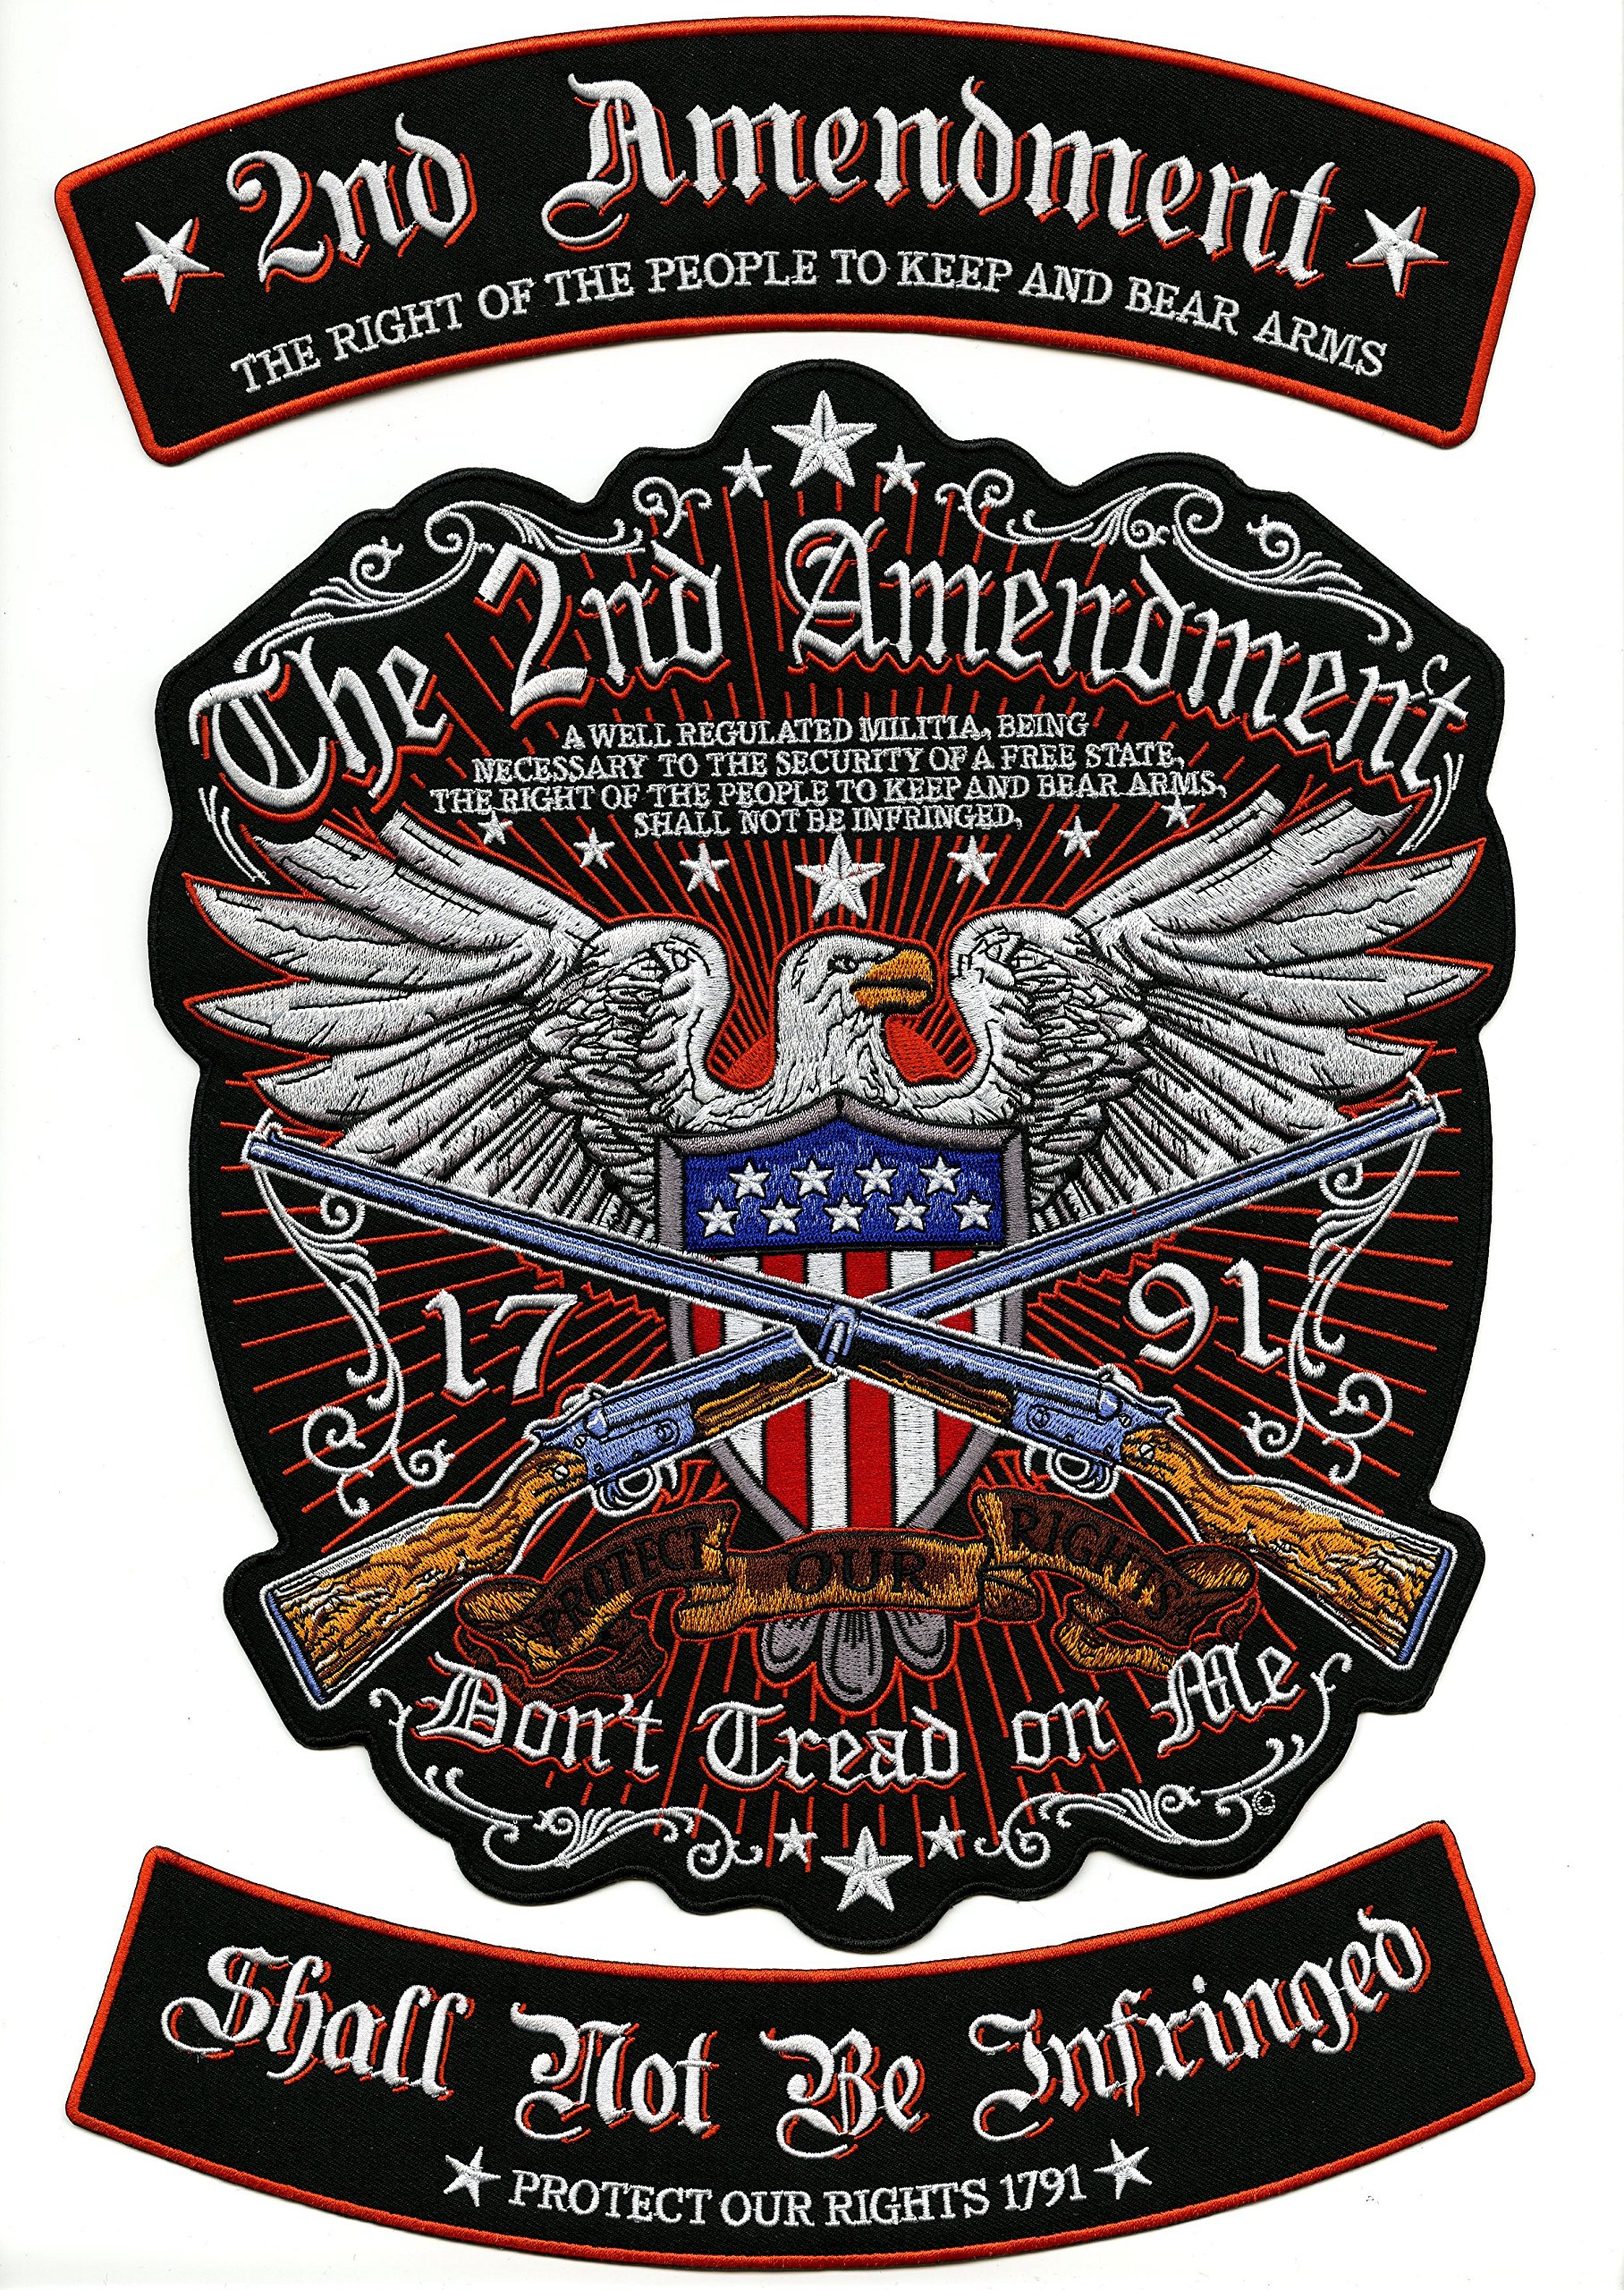 2nd Amendment Rockers Eagle Center Patch | Large Motorcycle Military Patriotic Flag Embroidered Patches | 3pc. Set - by Nixon Thread Co. by Nixon Thread Co.